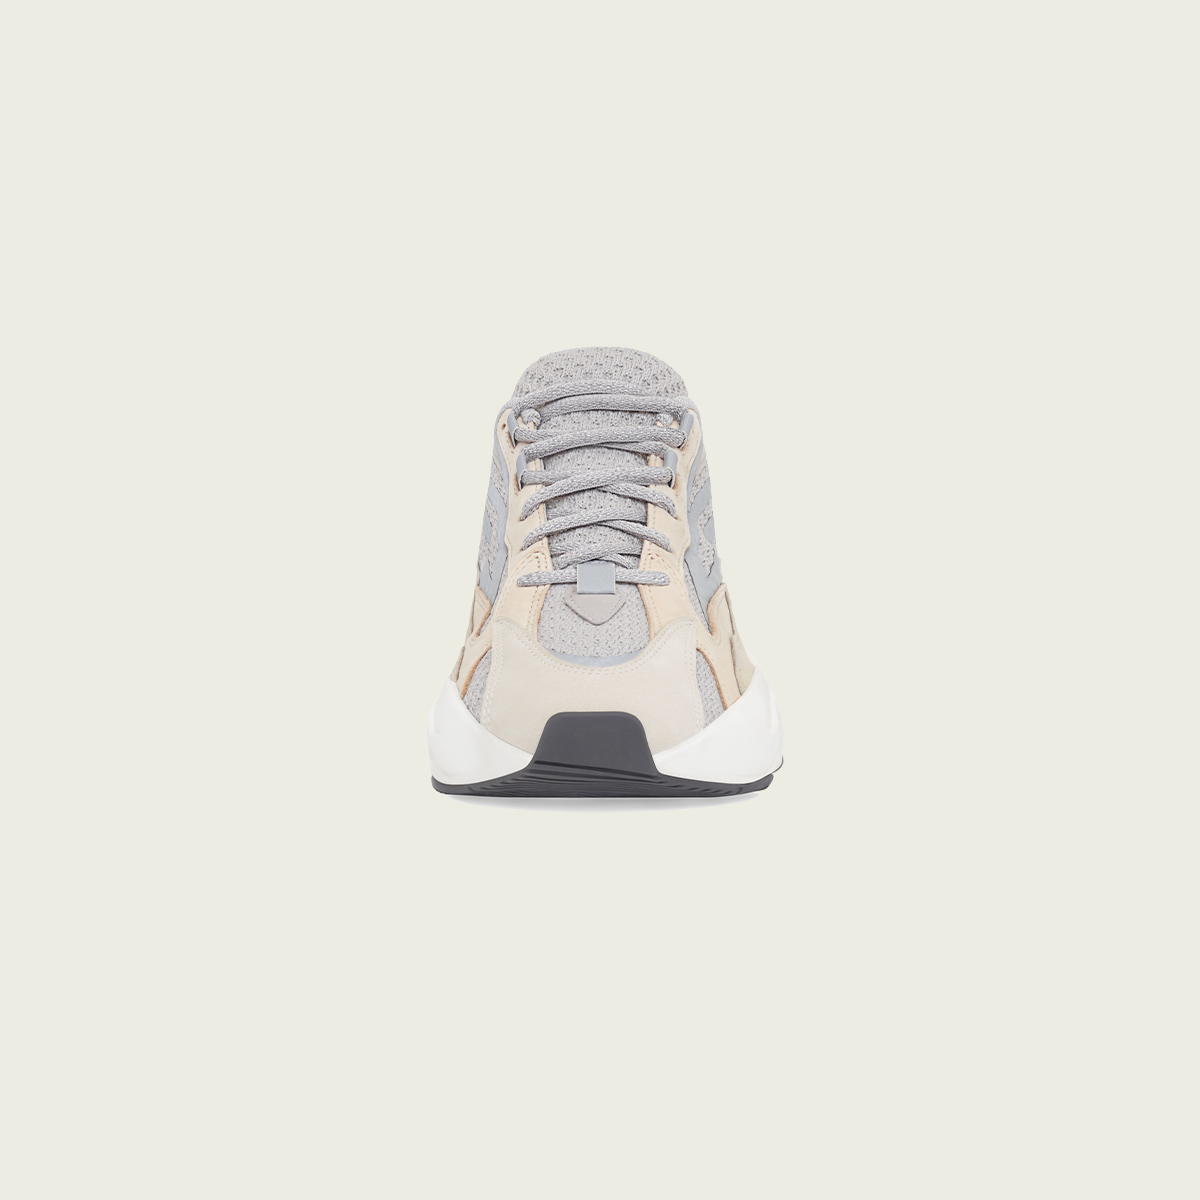 YEEZY BOOST 700 V2 'Cream' HIP raffle